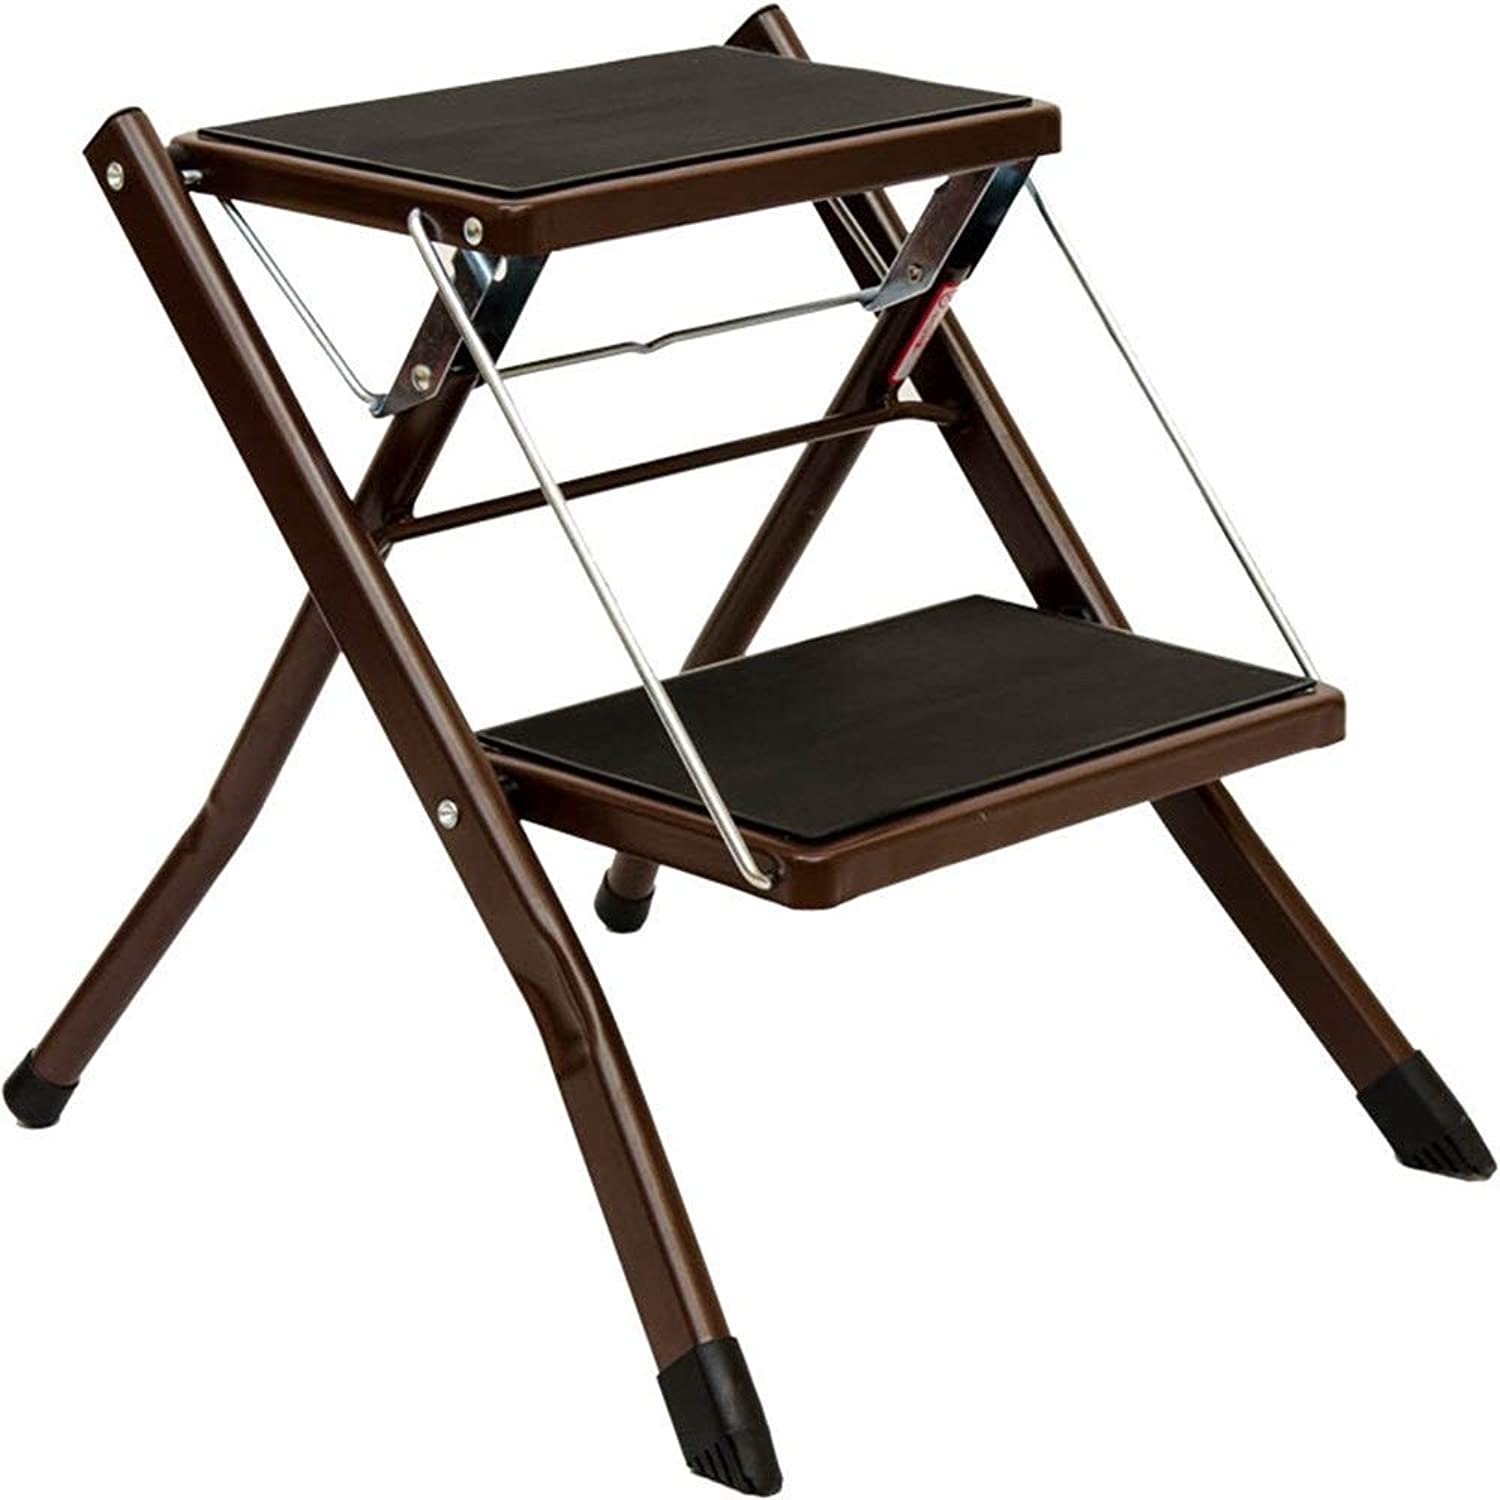 GAIXIA-Ladder stool Household Two-Step Ladder Step Stool Indoor Folding Step Stool Anti-Skid Ladder (color   Brown)